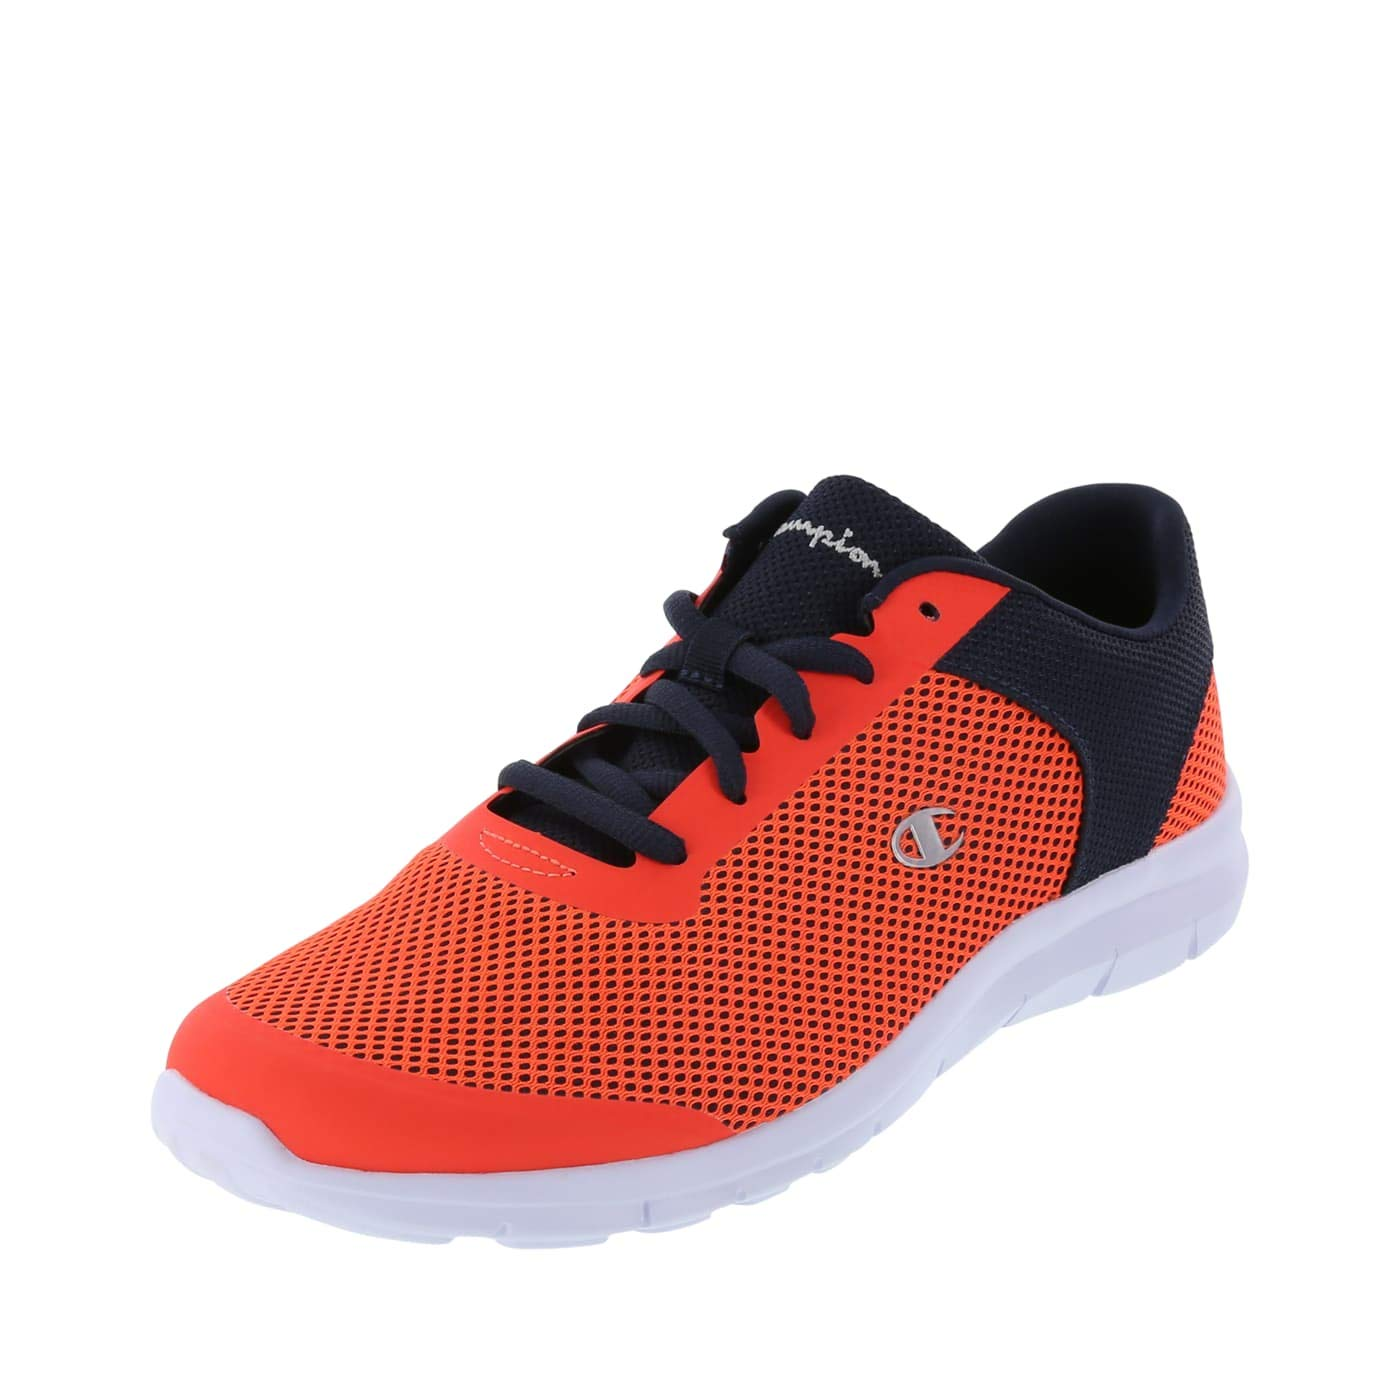 5e05ab9d365fb Champion Men s Gusto Cross Trainer Running Shoes - Ideal for Running ...